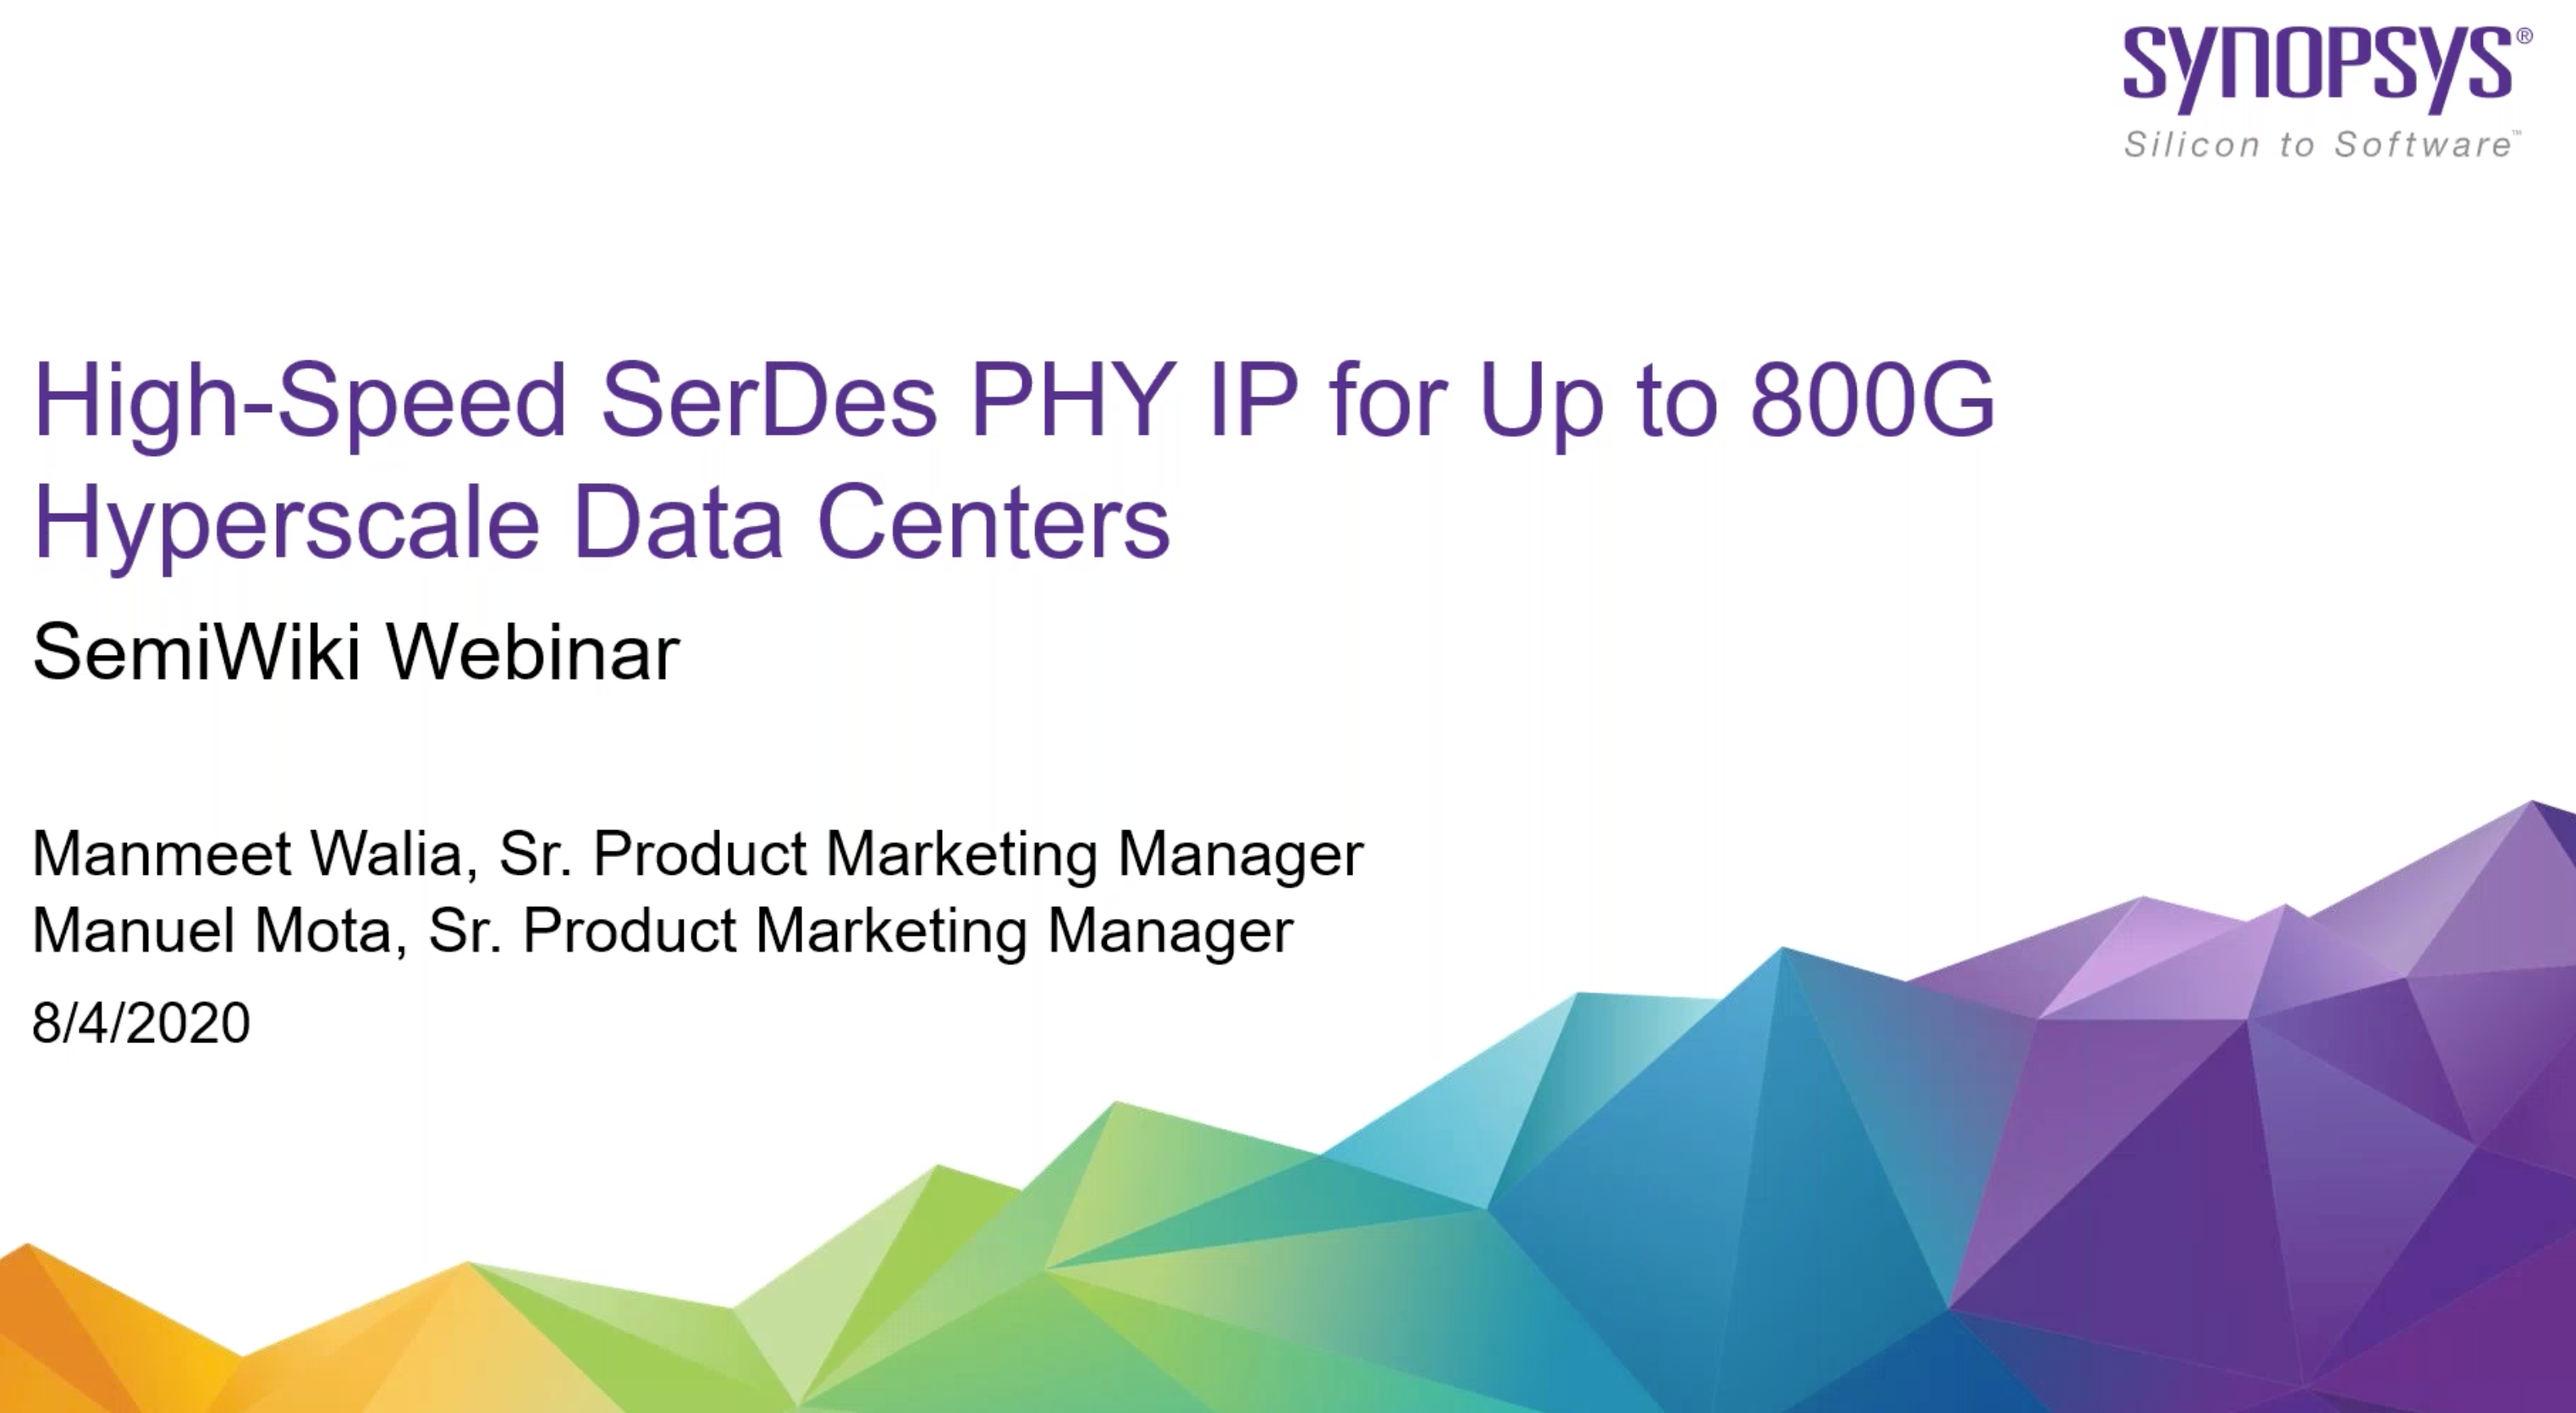 synopsys webinar high-speed serdes phy ip